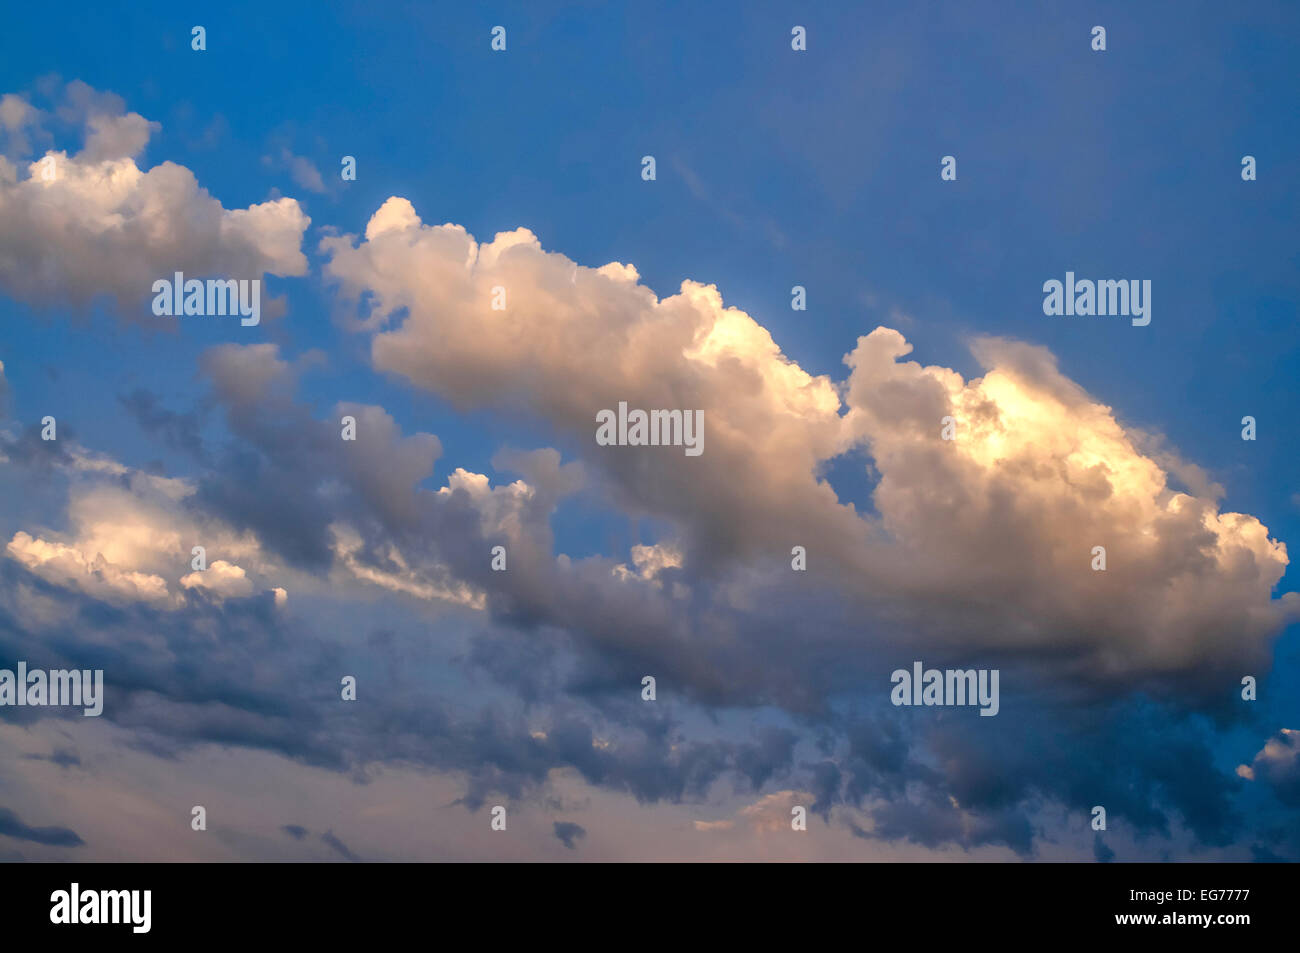 Skyscape with storm clouds brewing - France. - Stock Image